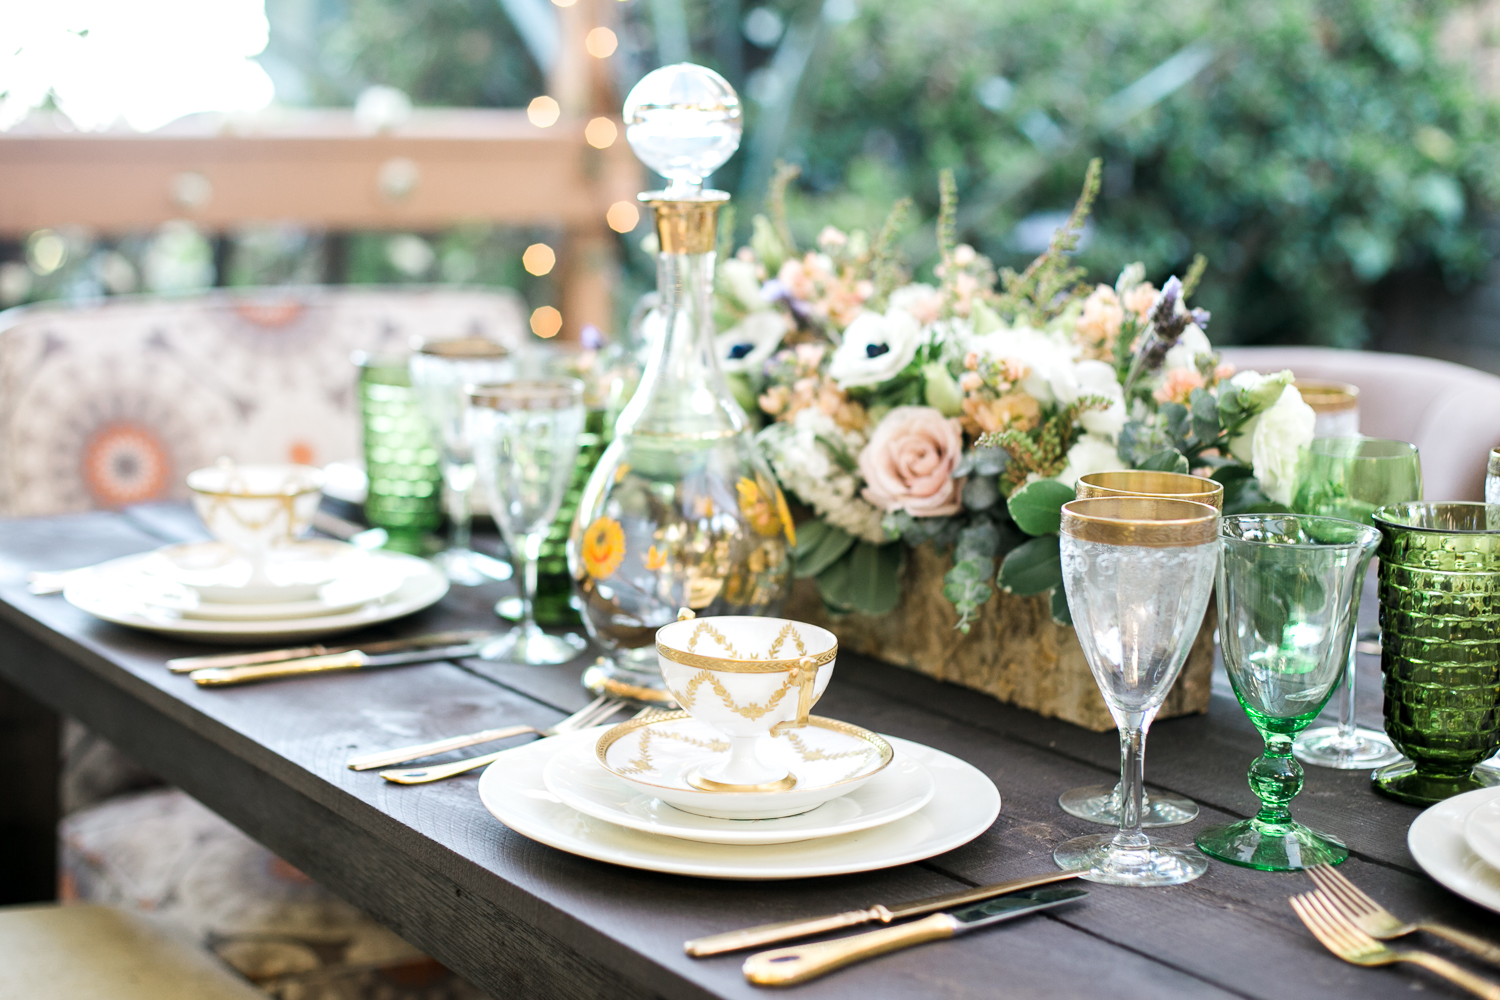 170429 Tablescape Styled Shoot-13